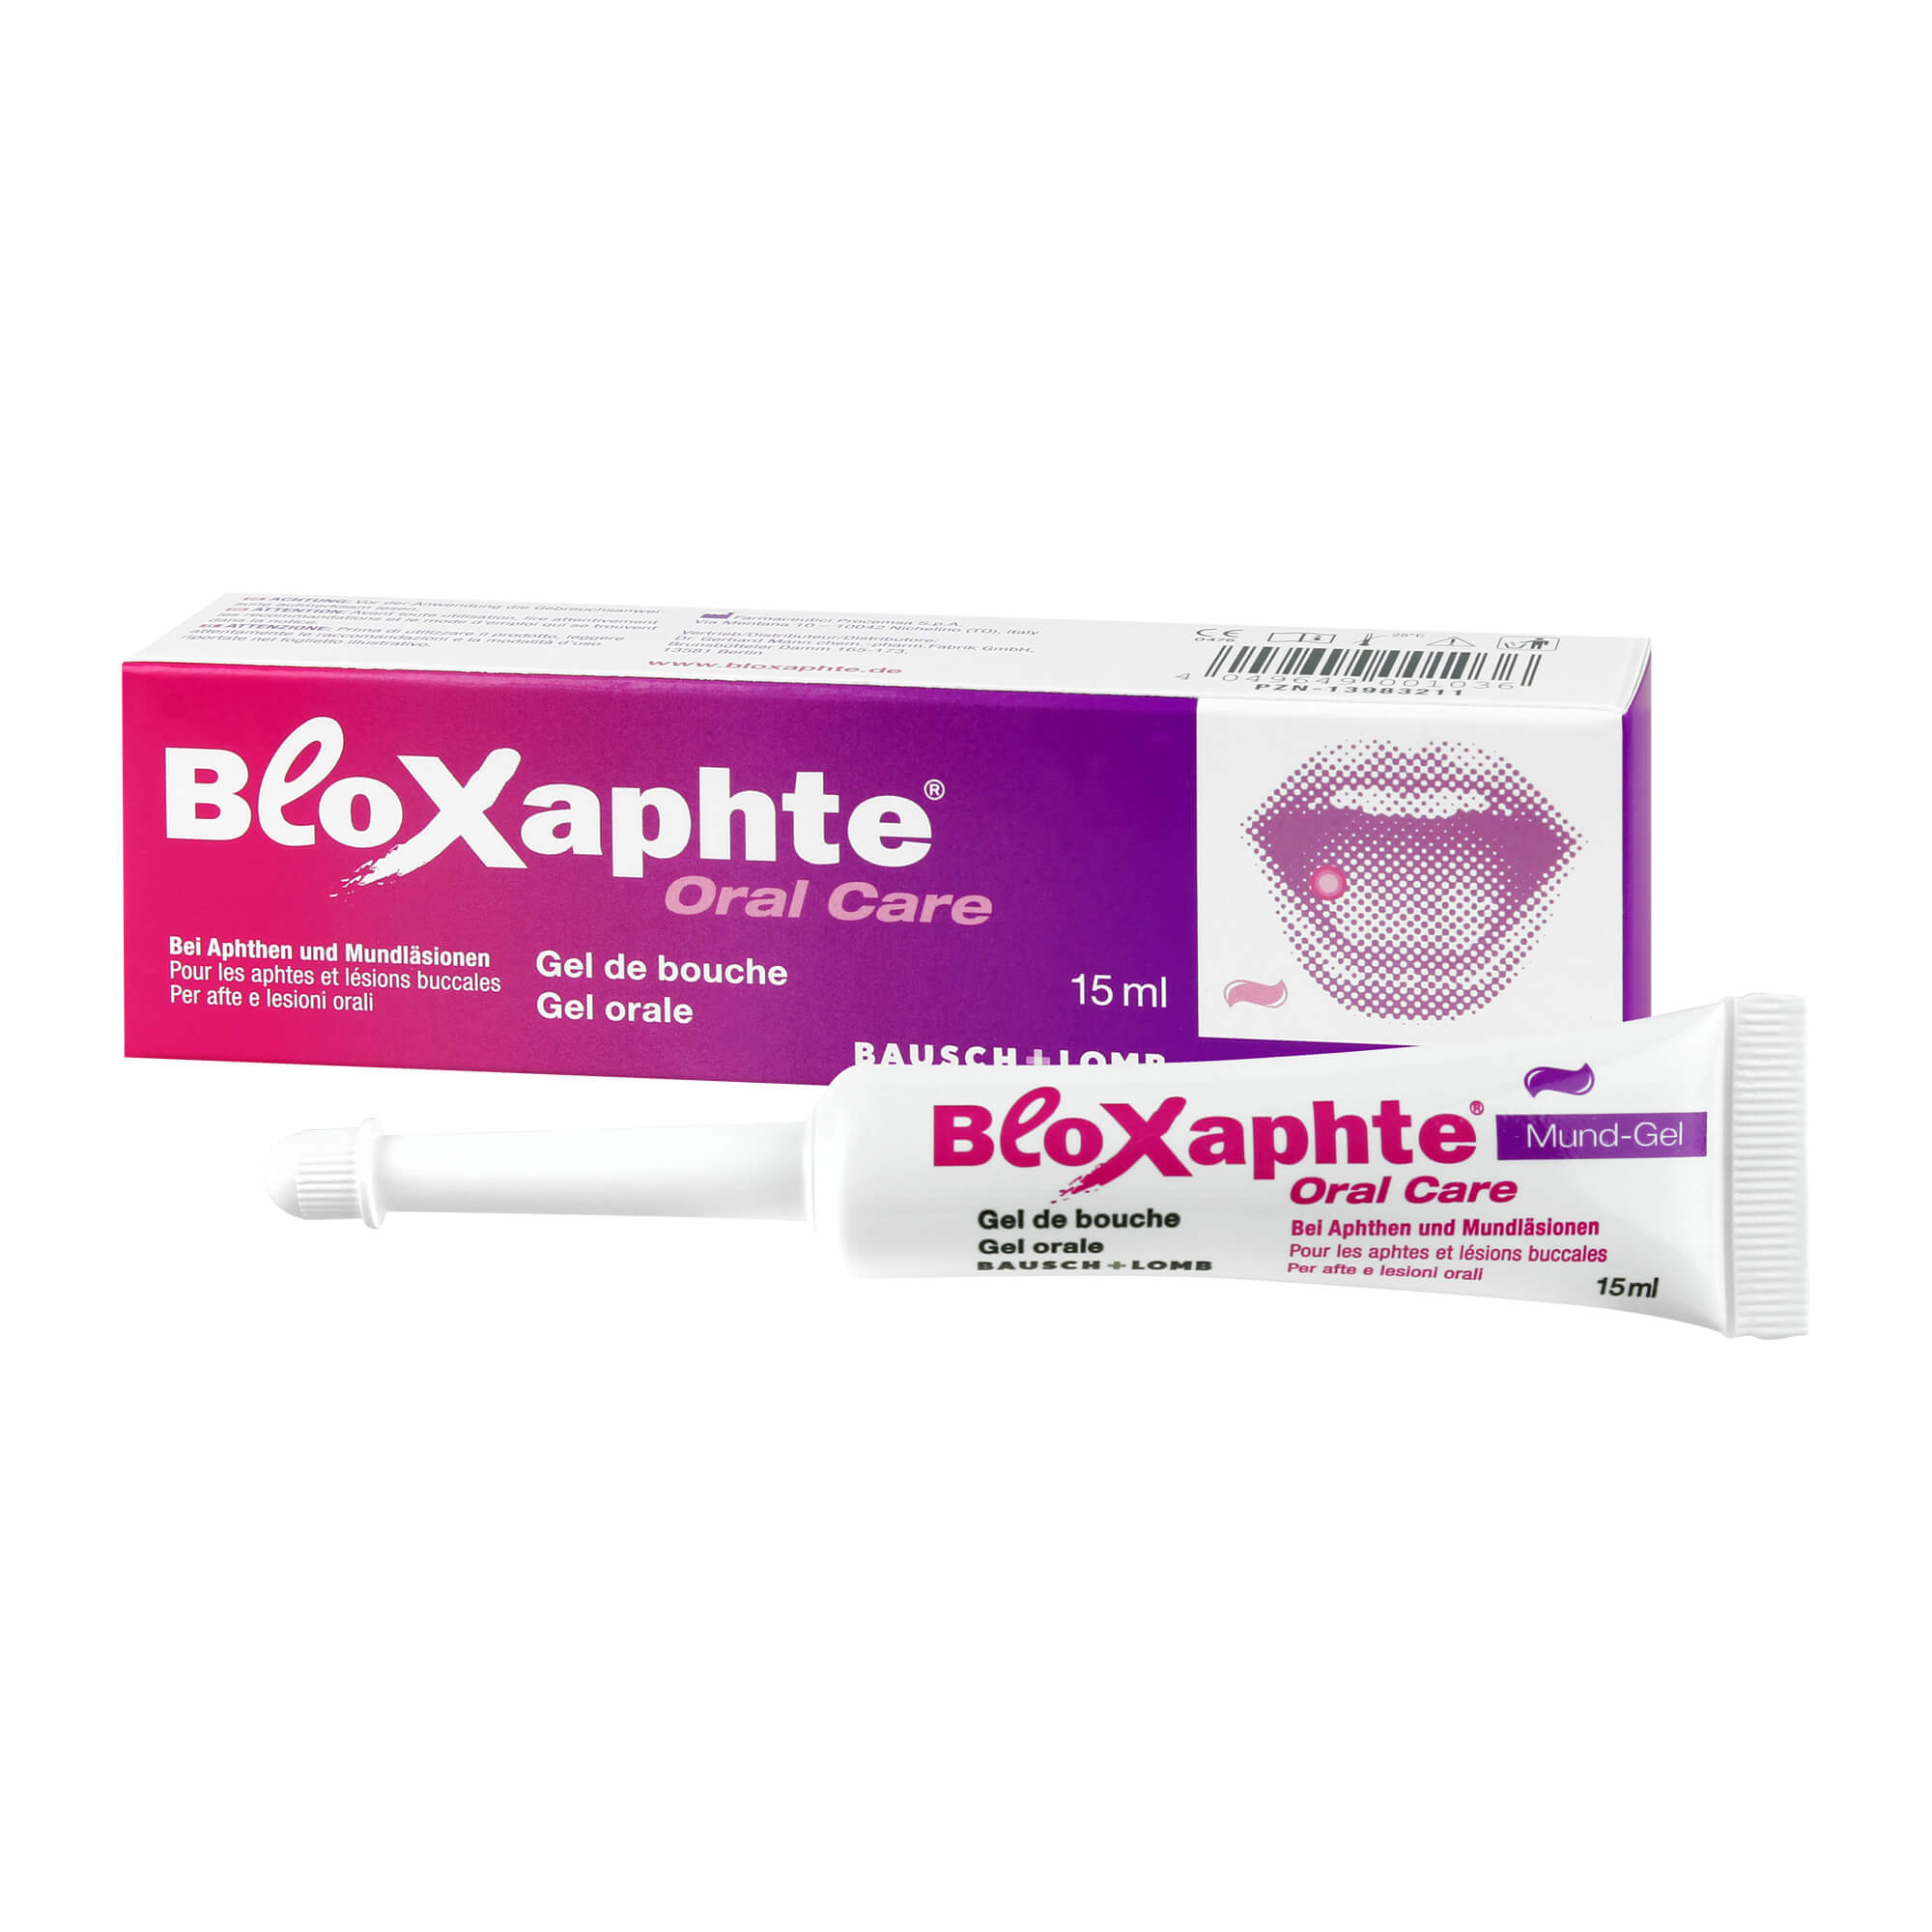 Bloxaphte Oral Care Mund Gel